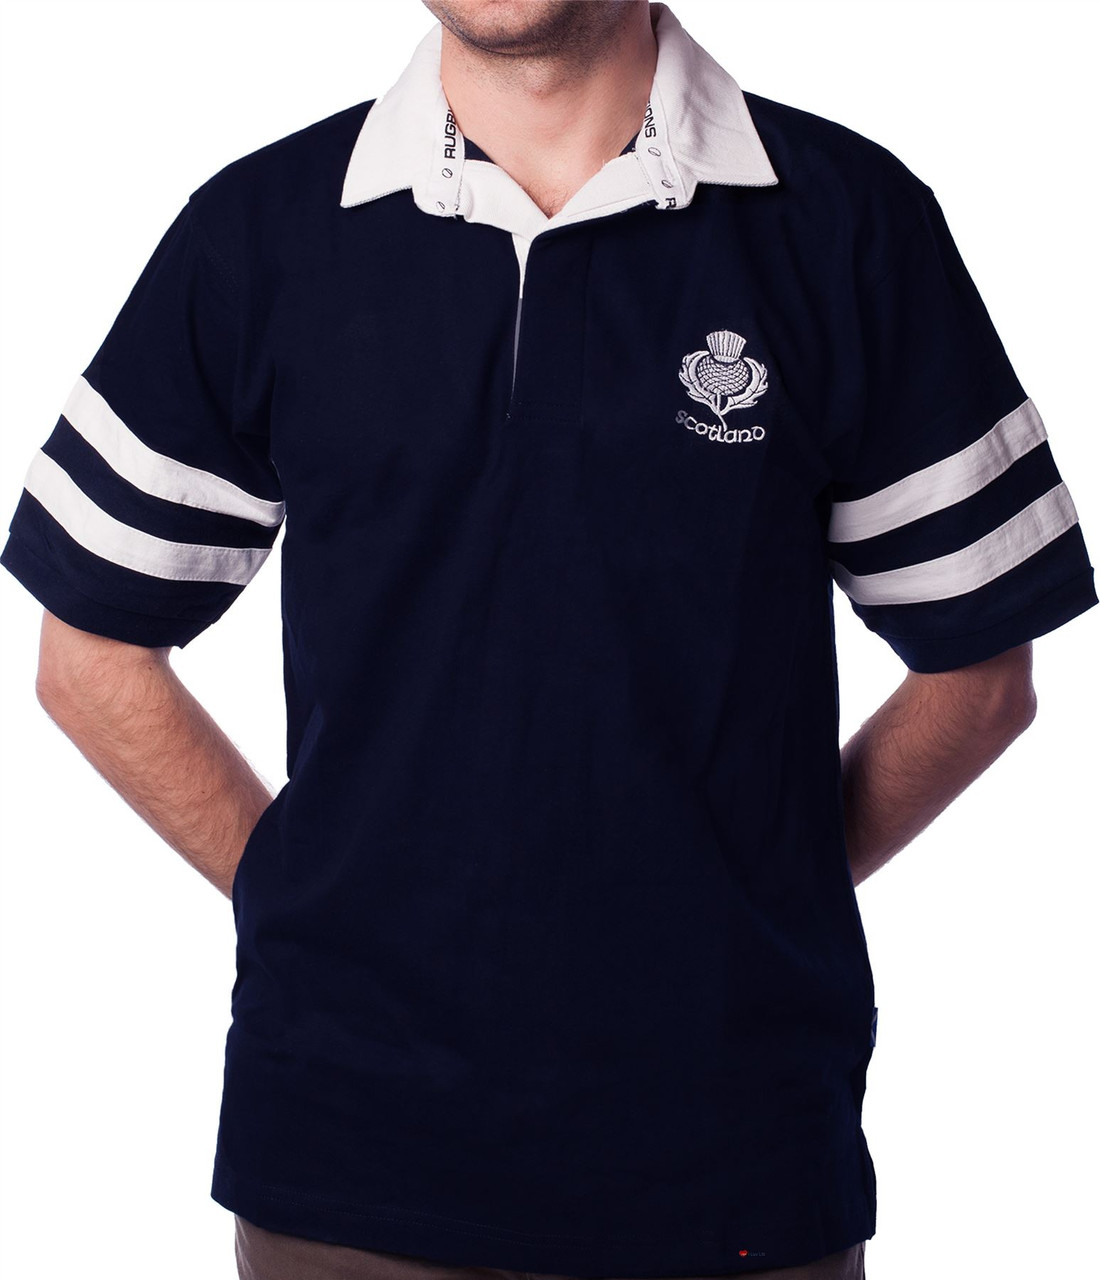 e9f698128d9 Mens Rugby Shirt Scotland 2 Stripe Short Sleeve Navy - ILuvSports.co.uk